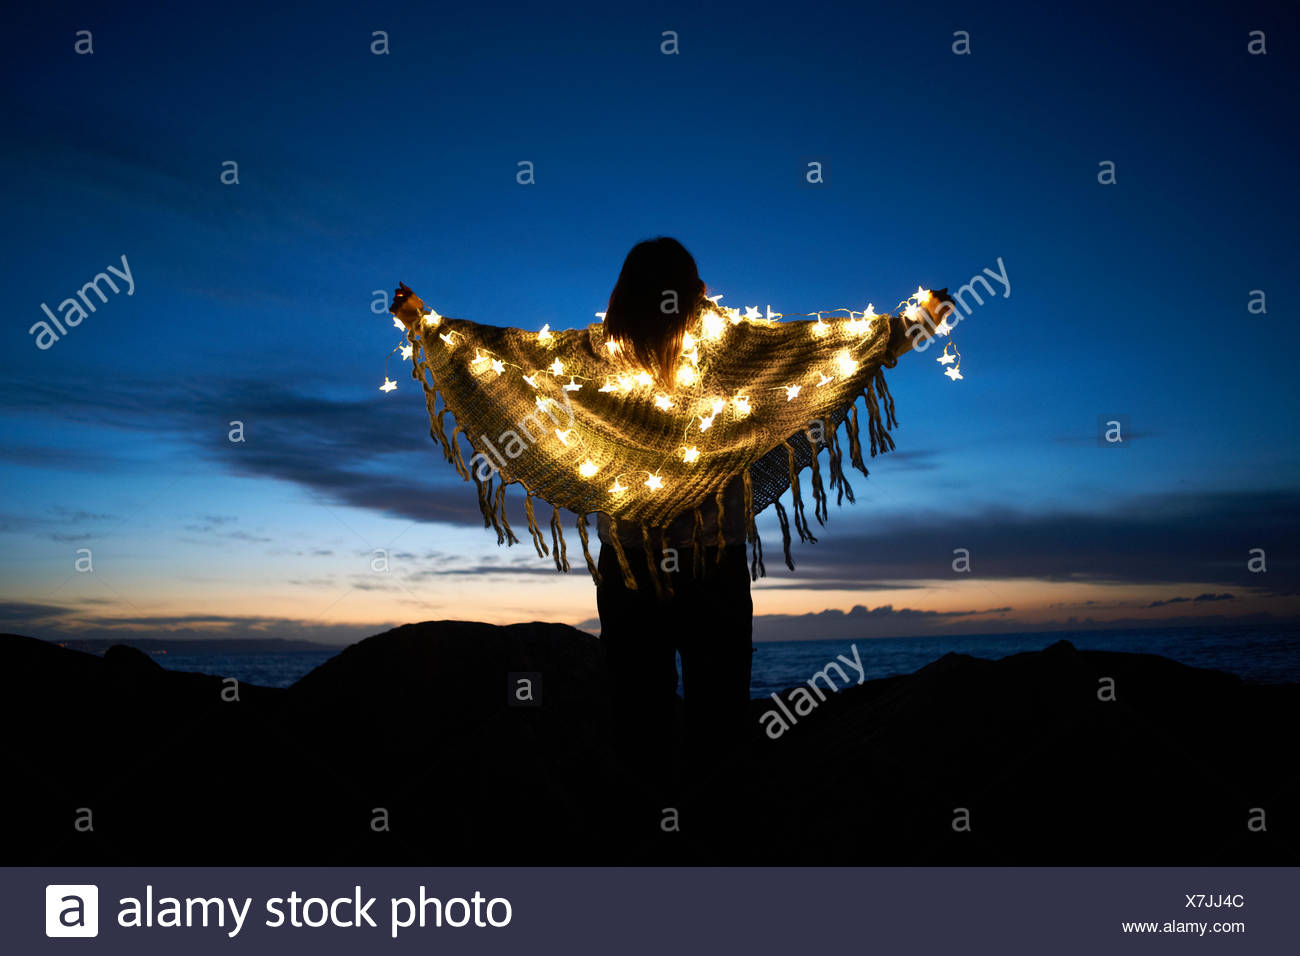 Rear view of woman wrapped in shawl with star fairy lights on beach at night - Stock Image